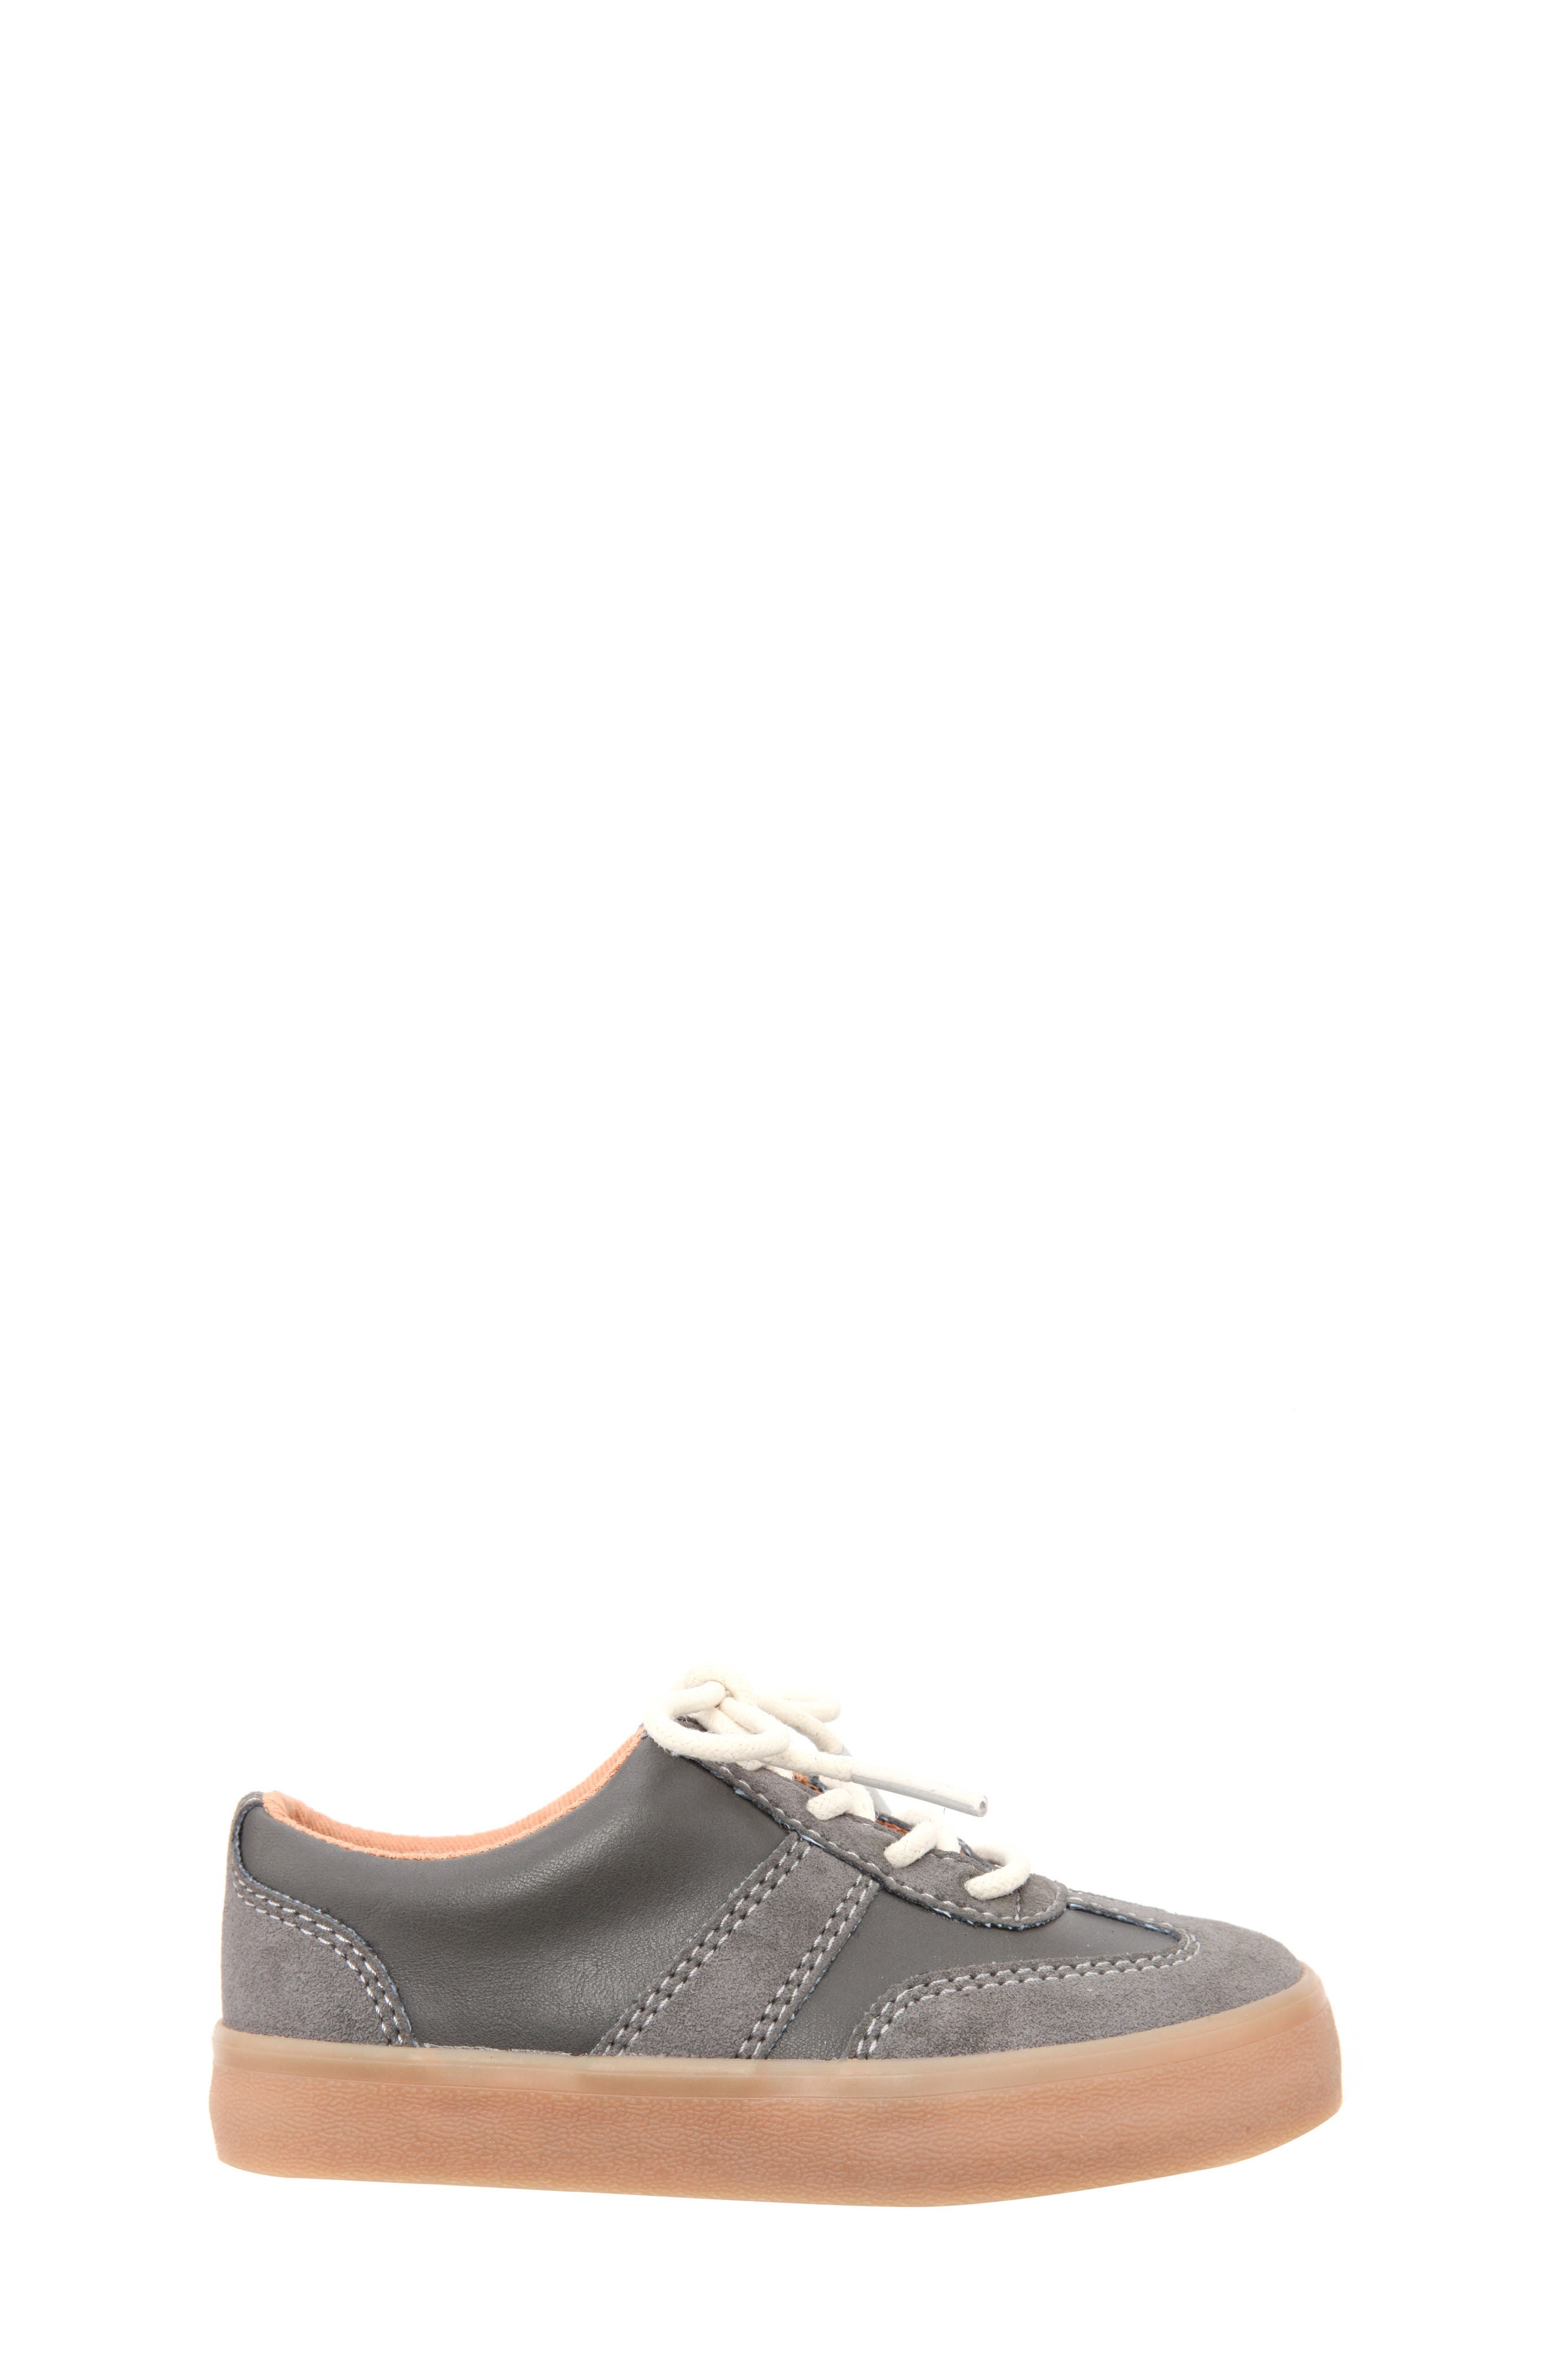 Neal Low Top Sneaker,                             Alternate thumbnail 3, color,                             064